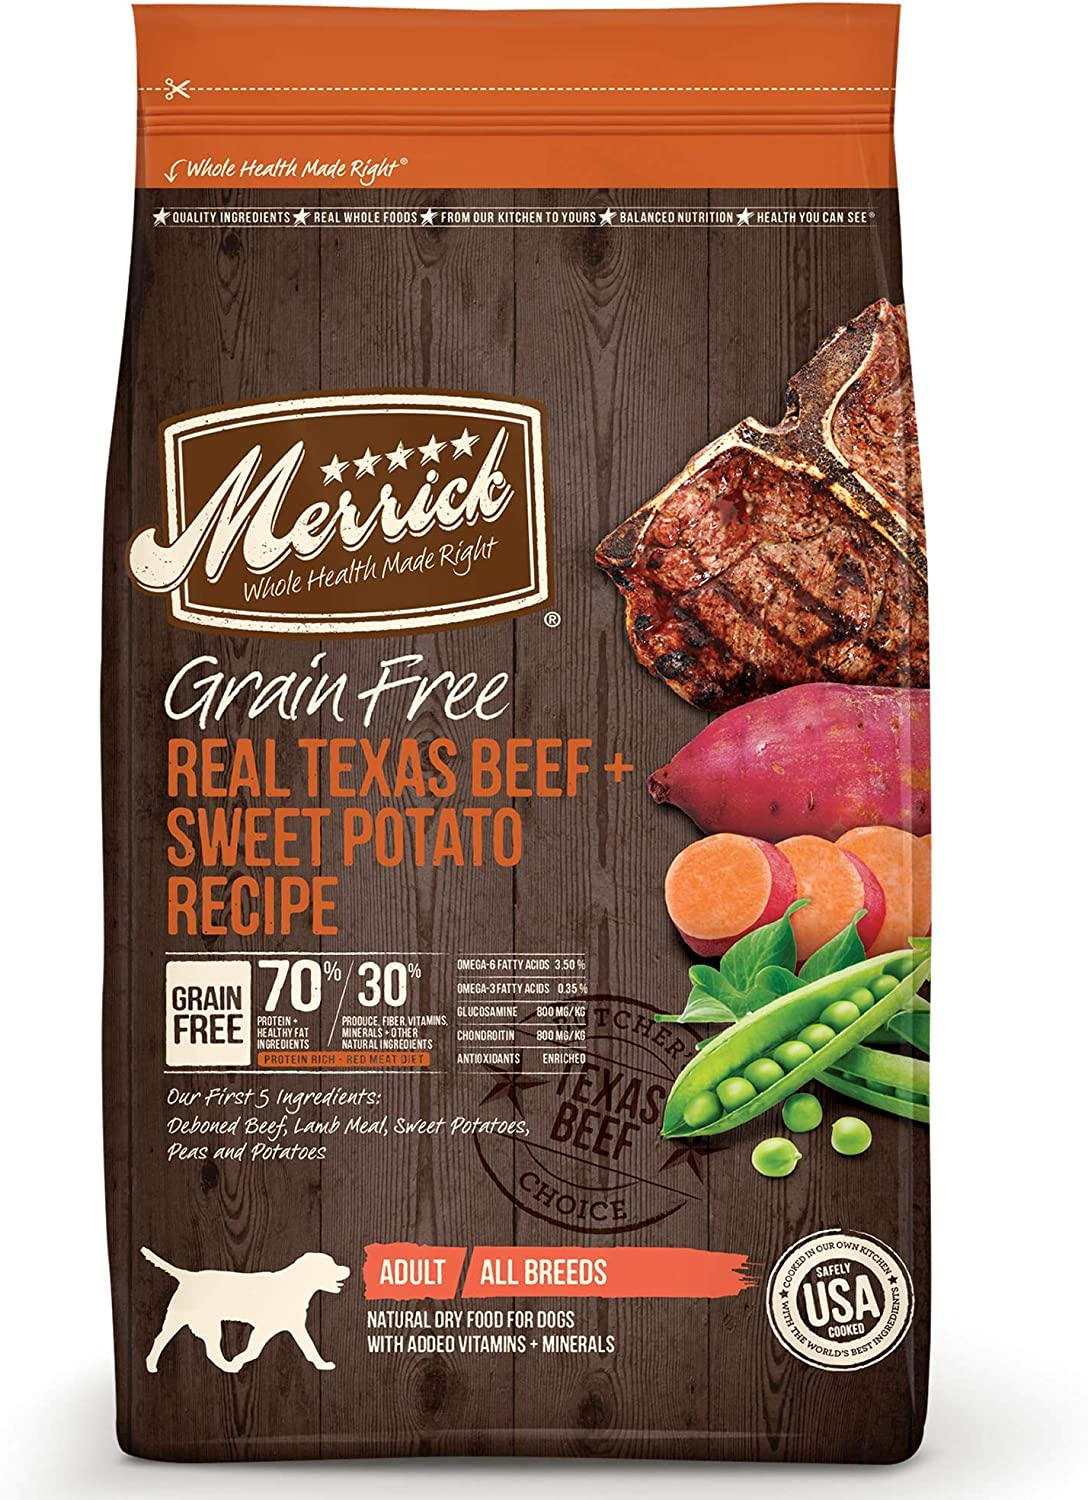 3. Merrick Grain-Free Texas Beef & Sweet Potato Recipe Dry Dog Food